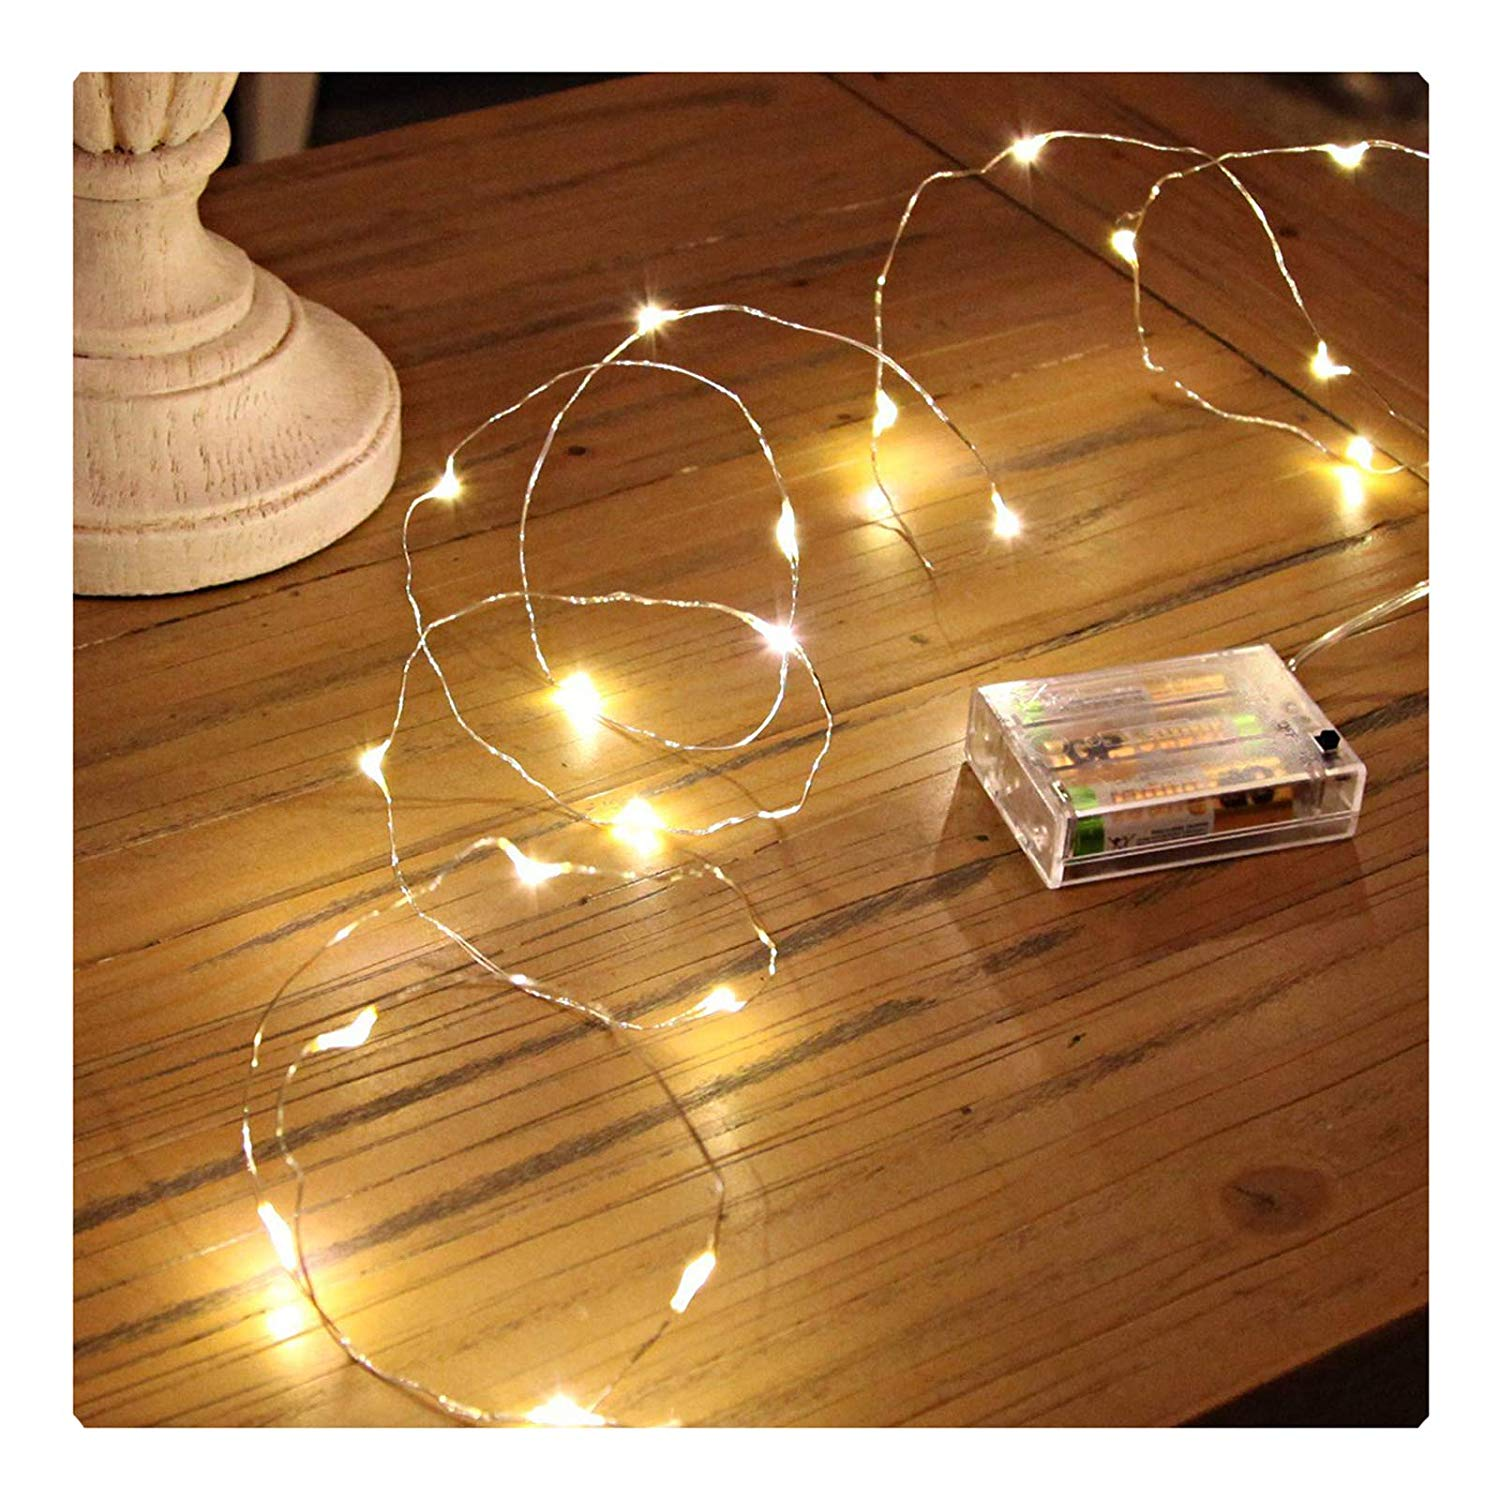 Sanniu Led String Lights, Mini Battery Powered Copper Wire Starry Fairy Lights, Battery Operated Lights for Bedroom, Christmas, Parties, Wedding, Centerpiece, Decoration (5m/16ft Warm White) - LED Wire Lights